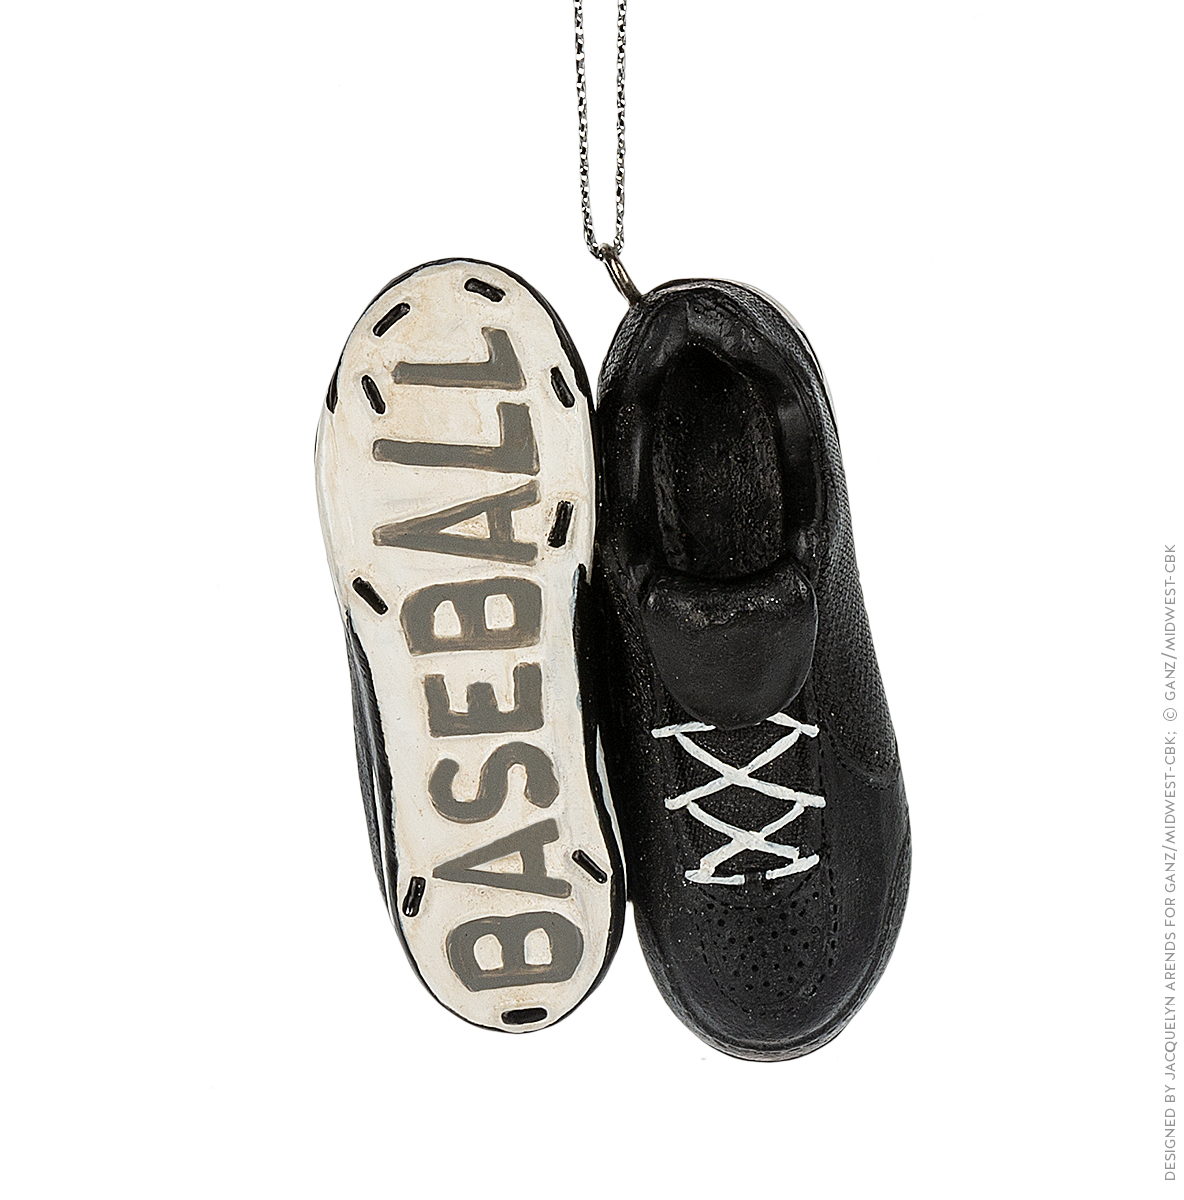 Specialty Ornaments Baseball Shoes ornament by Jacquelyn Arends; © Ganz/Midwest-CBK 2019